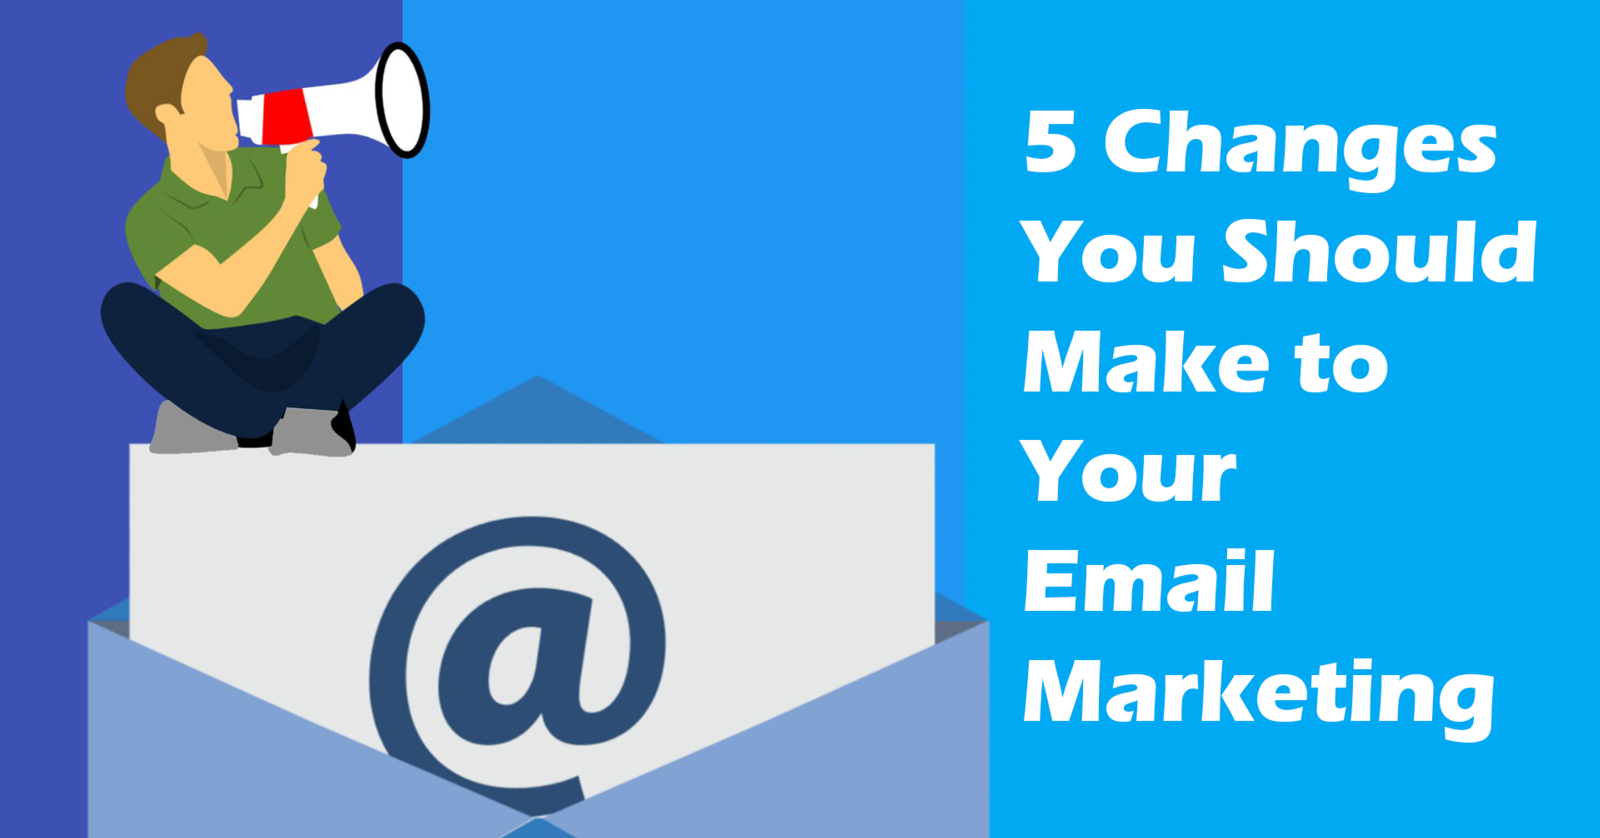 Here's how you can improve your email marketing with a few simple steps.